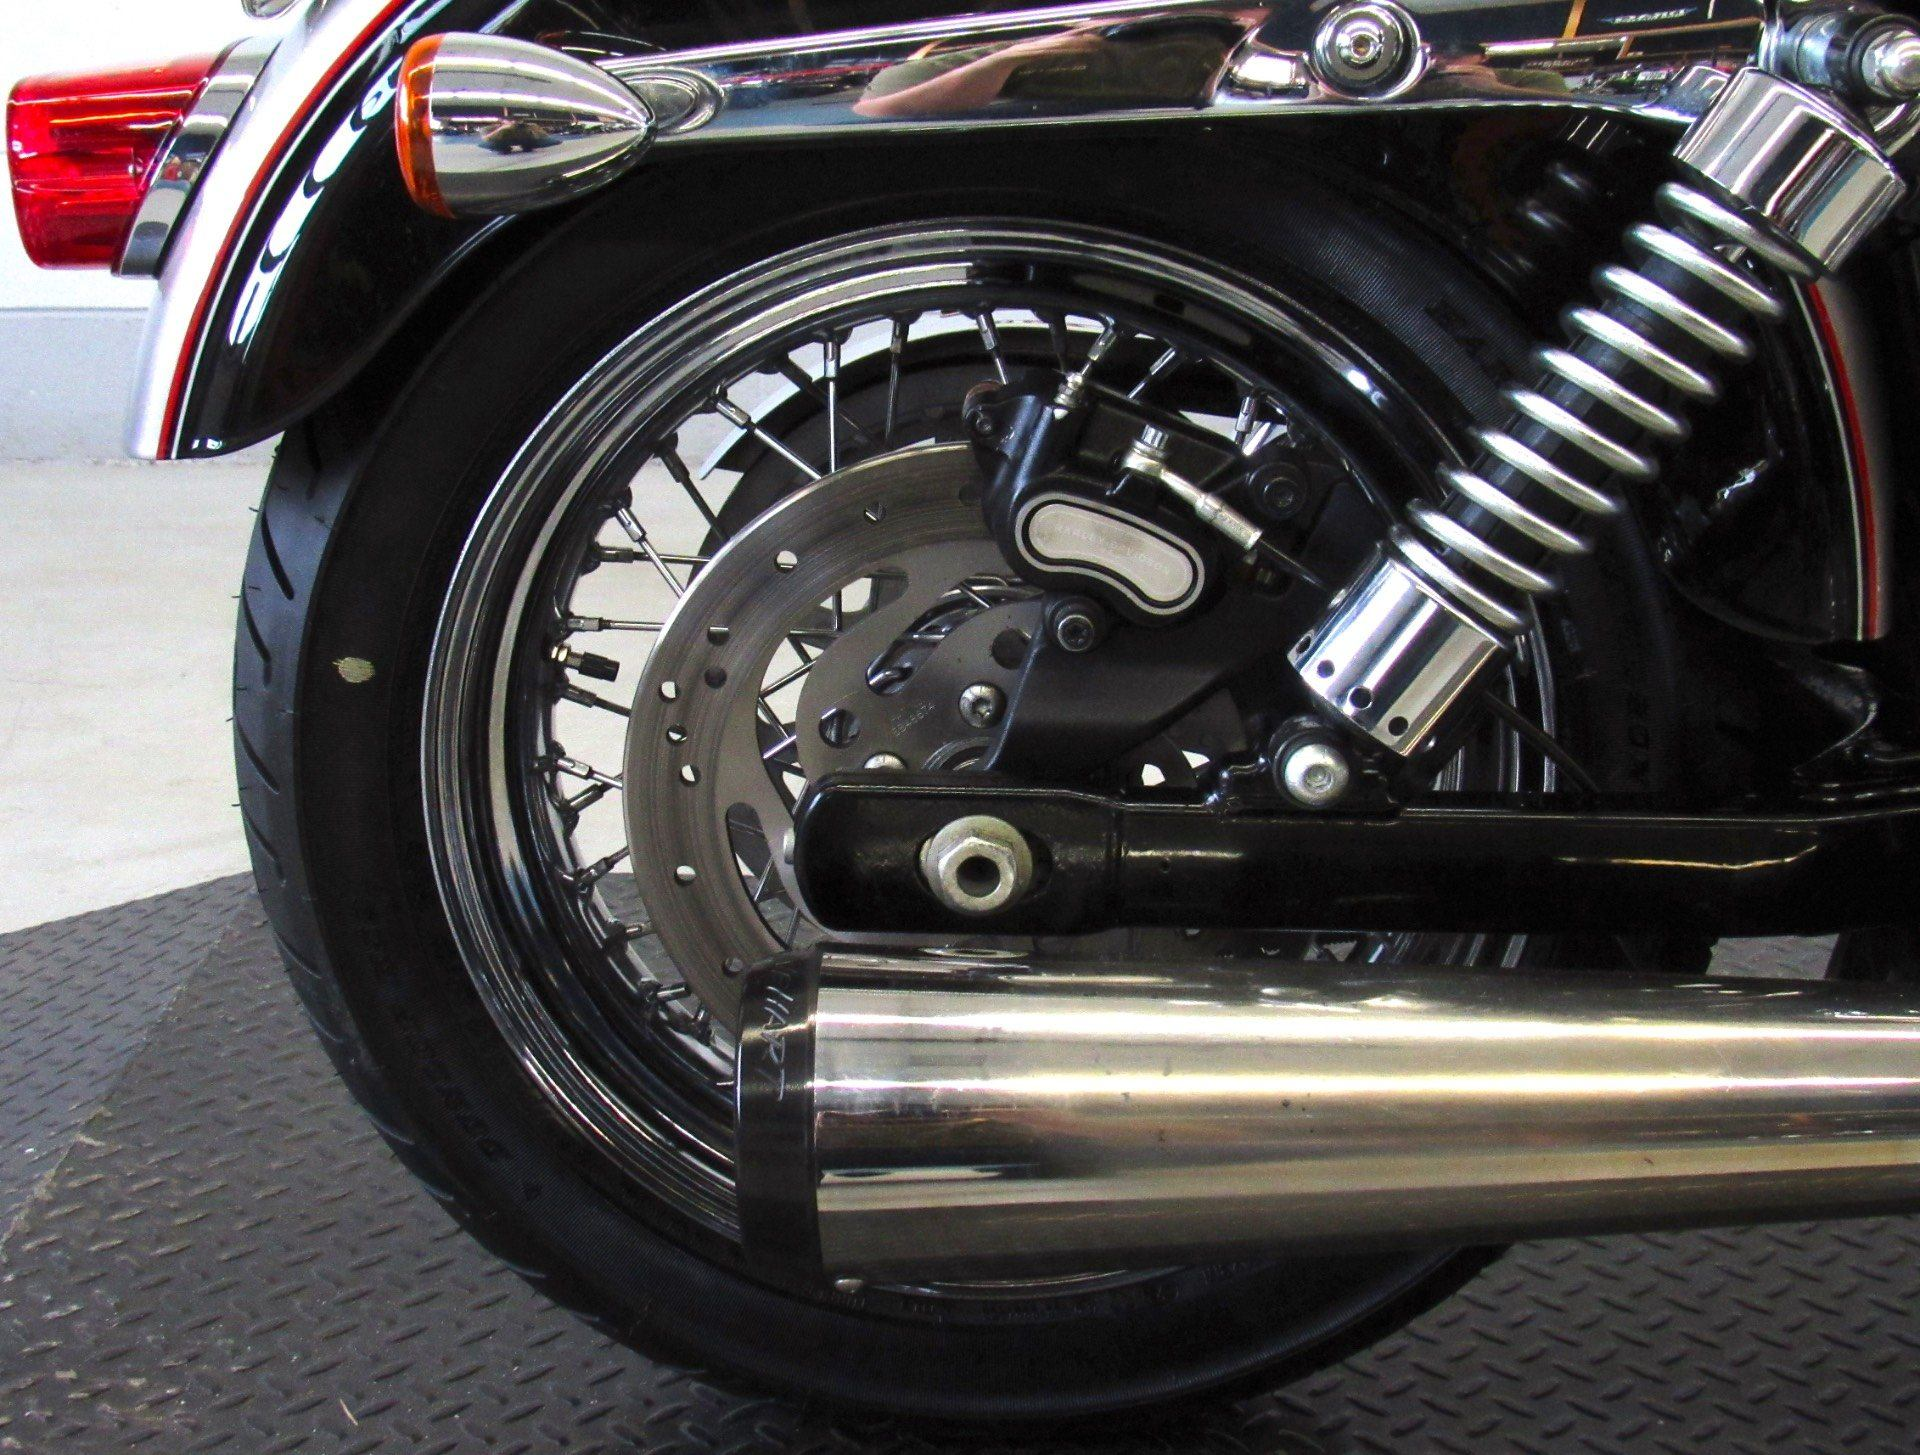 2009 Harley-Davidson Dyna® Super Glide® Custom in Fredericksburg, Virginia - Photo 15